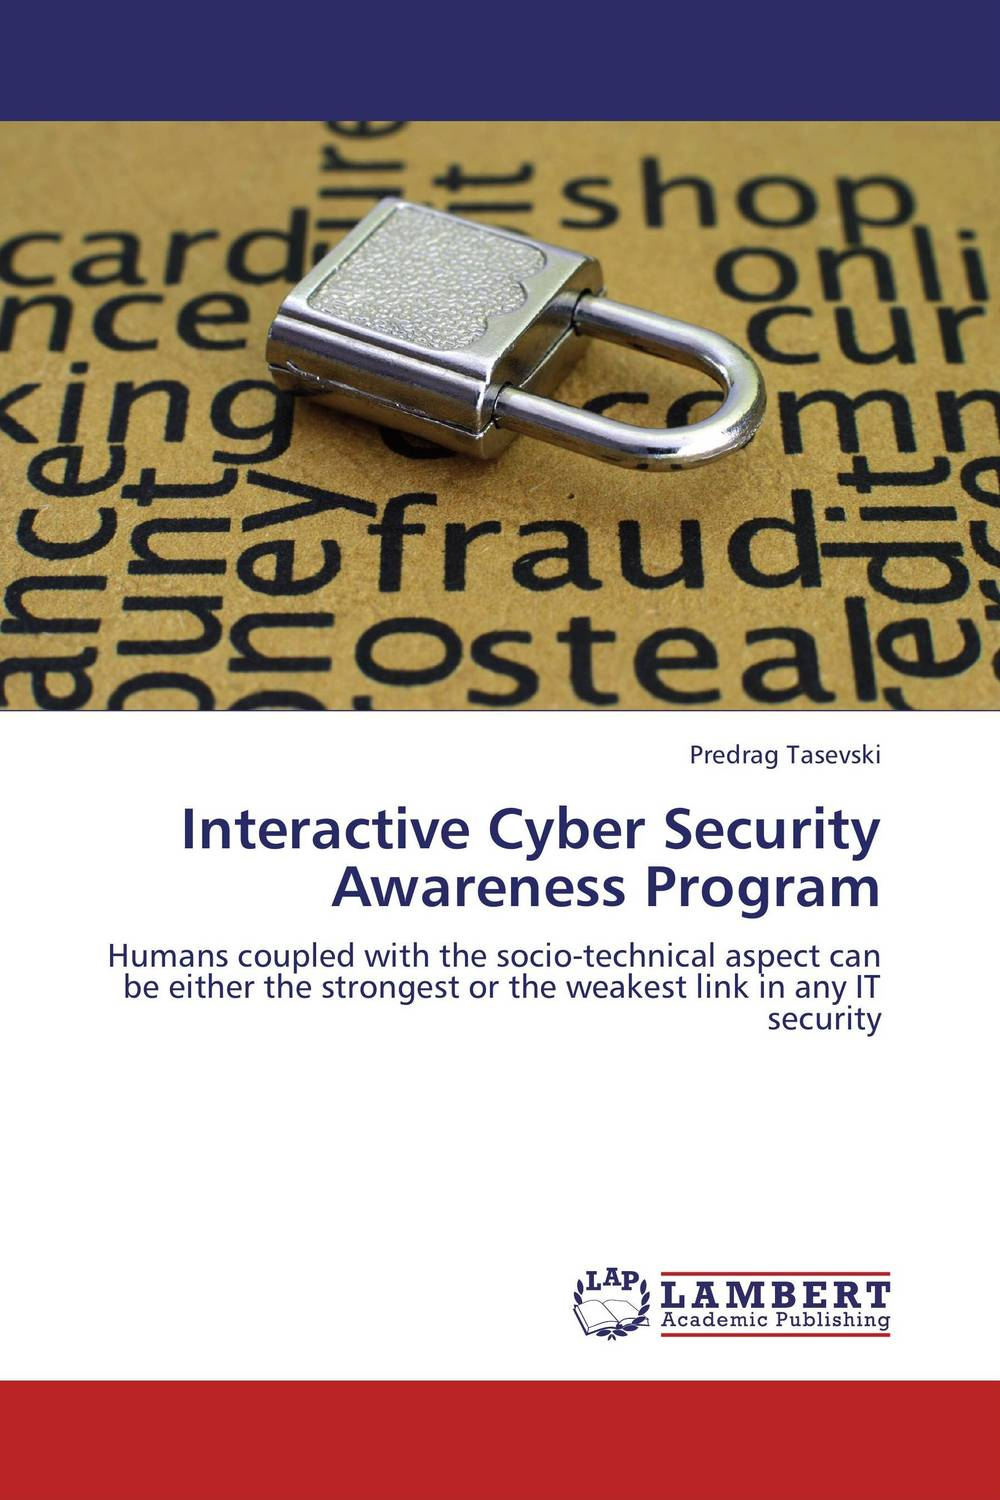 Interactive Cyber Security Awareness Program belousov a security features of banknotes and other documents methods of authentication manual денежные билеты бланки ценных бумаг и документов